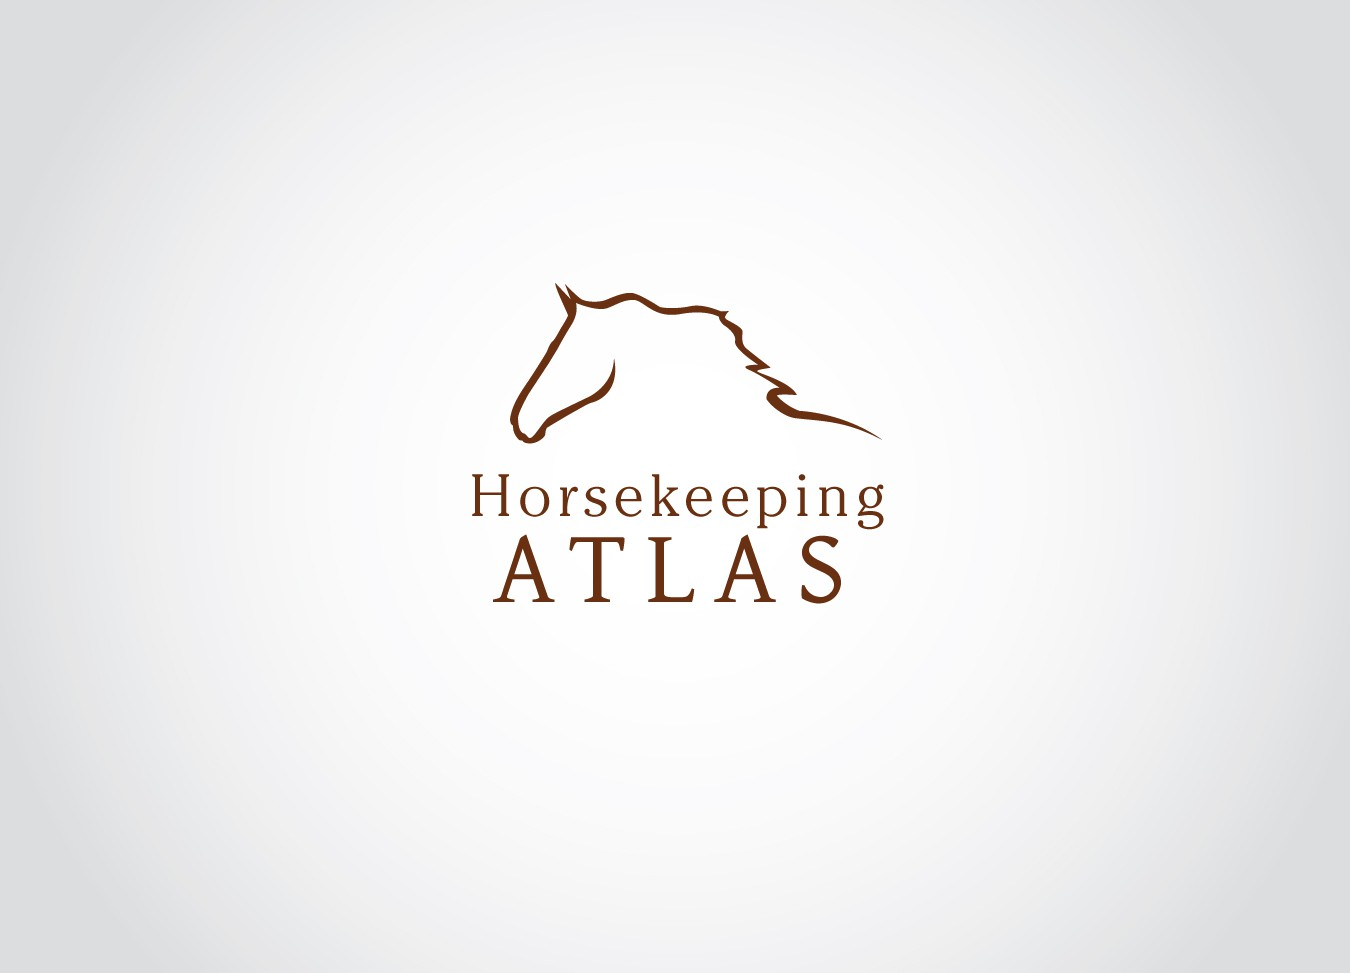 Help Horsekeeping Atlas with a new logo